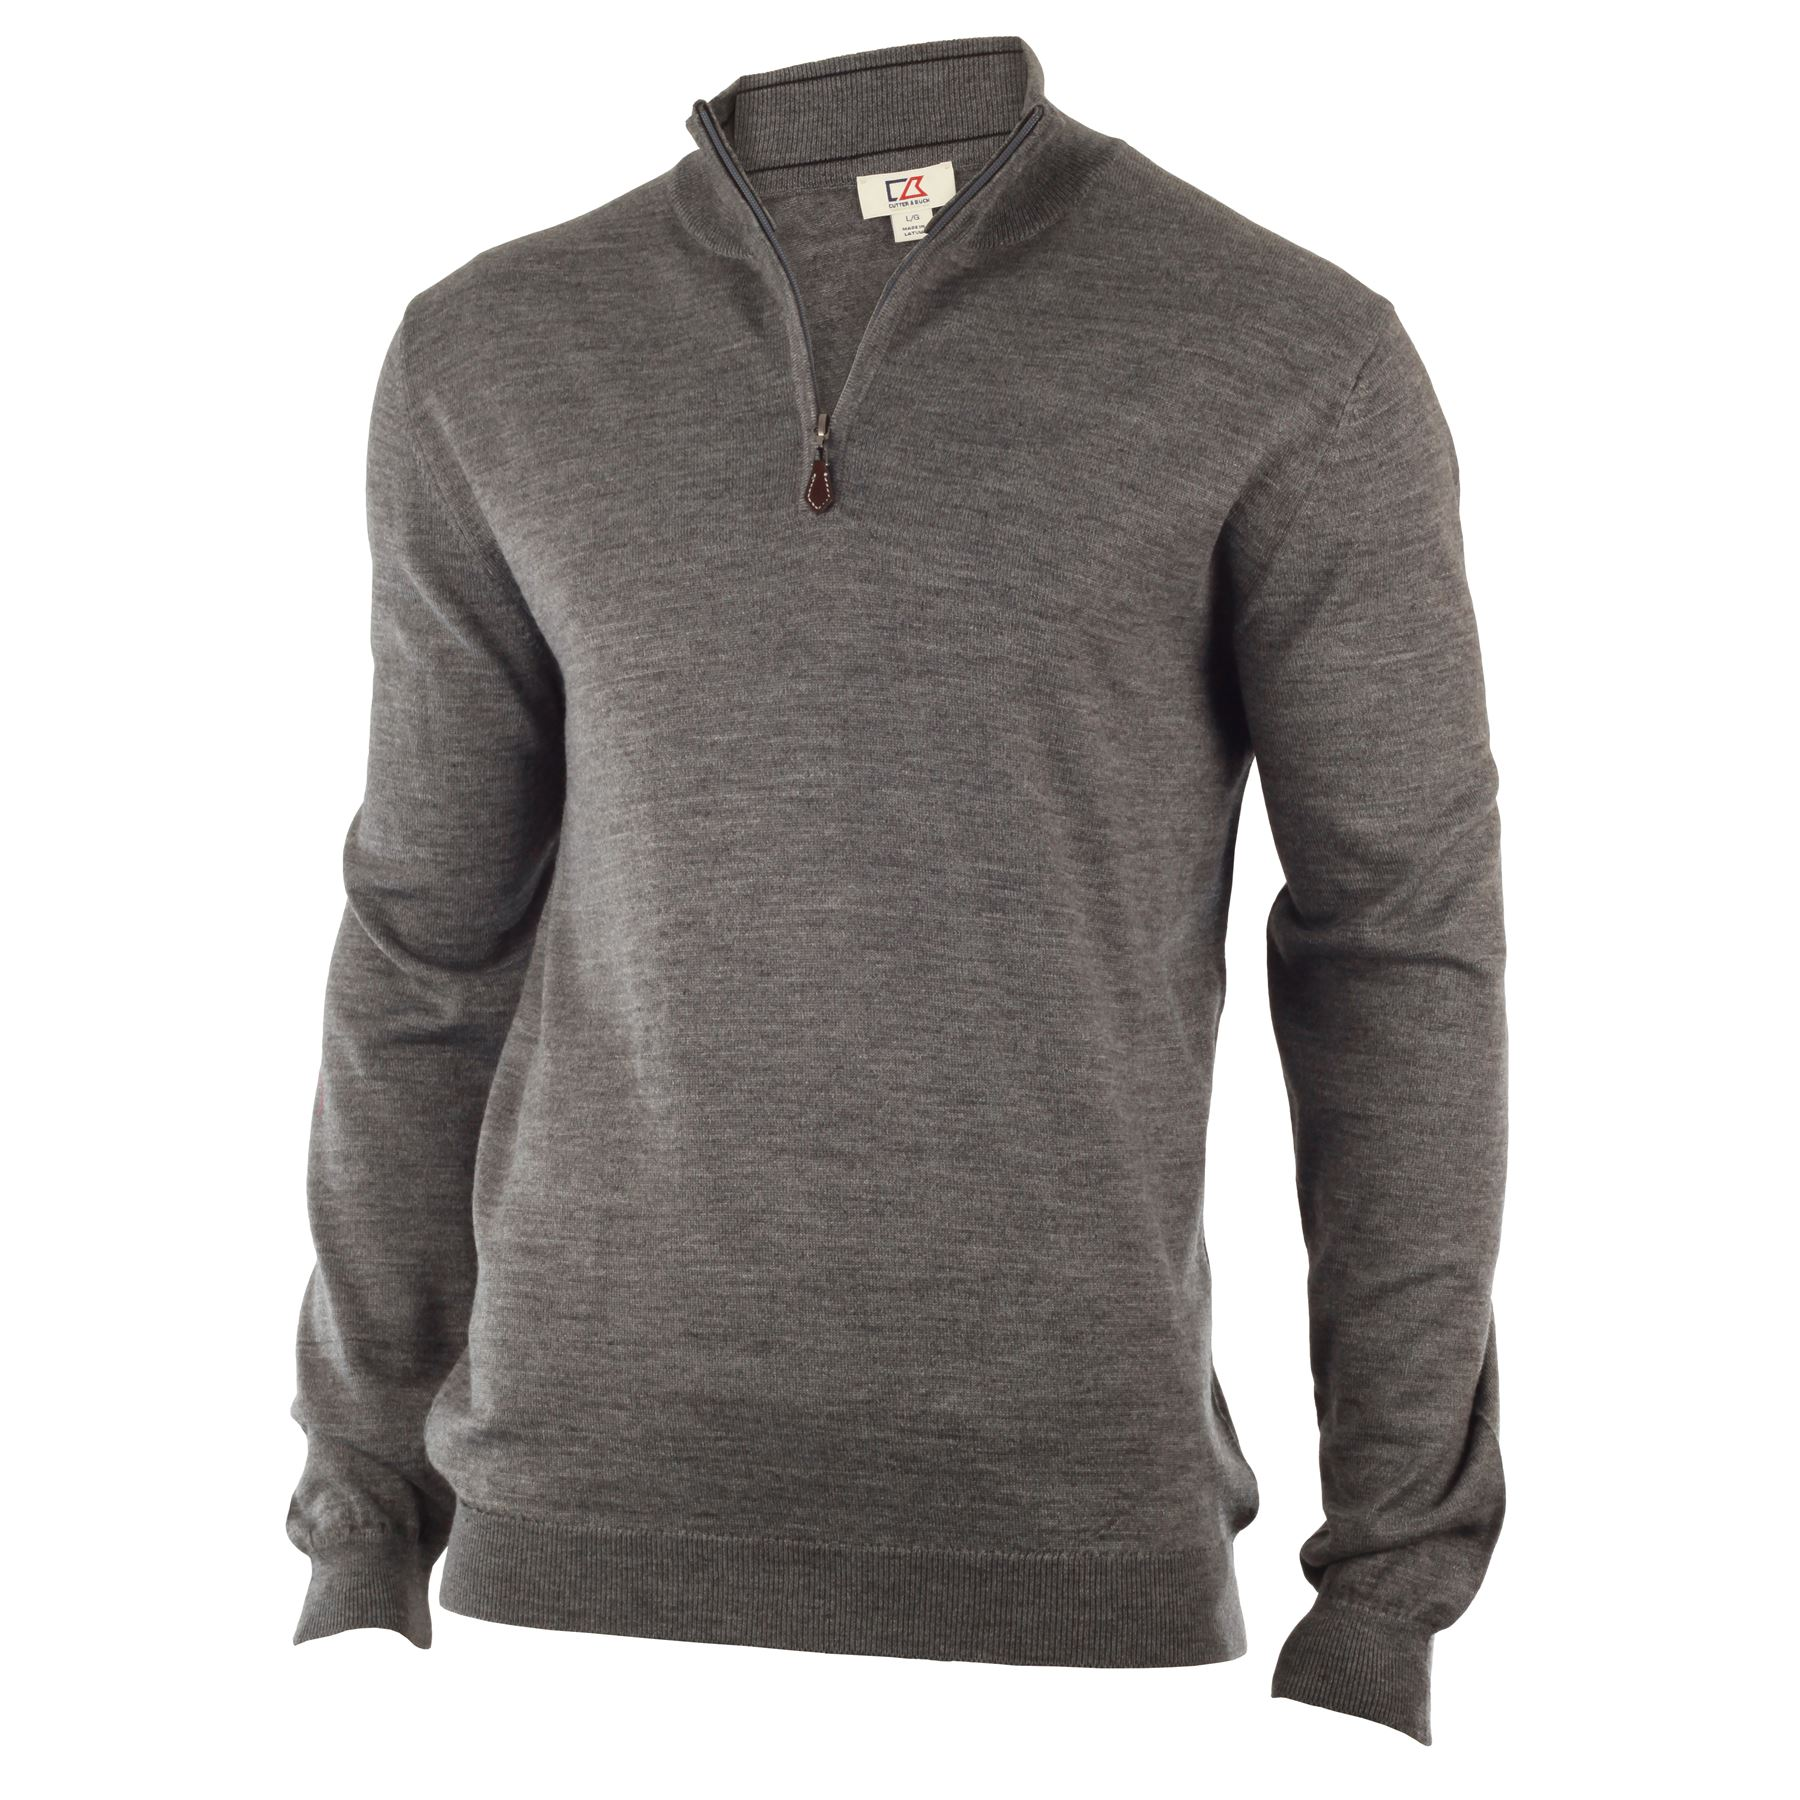 About Men's Sweaters. Find superbly constructed sweaters for men at Eddie Bauer in a variety of styles, patterns and colors. Whichever men's sweaters .